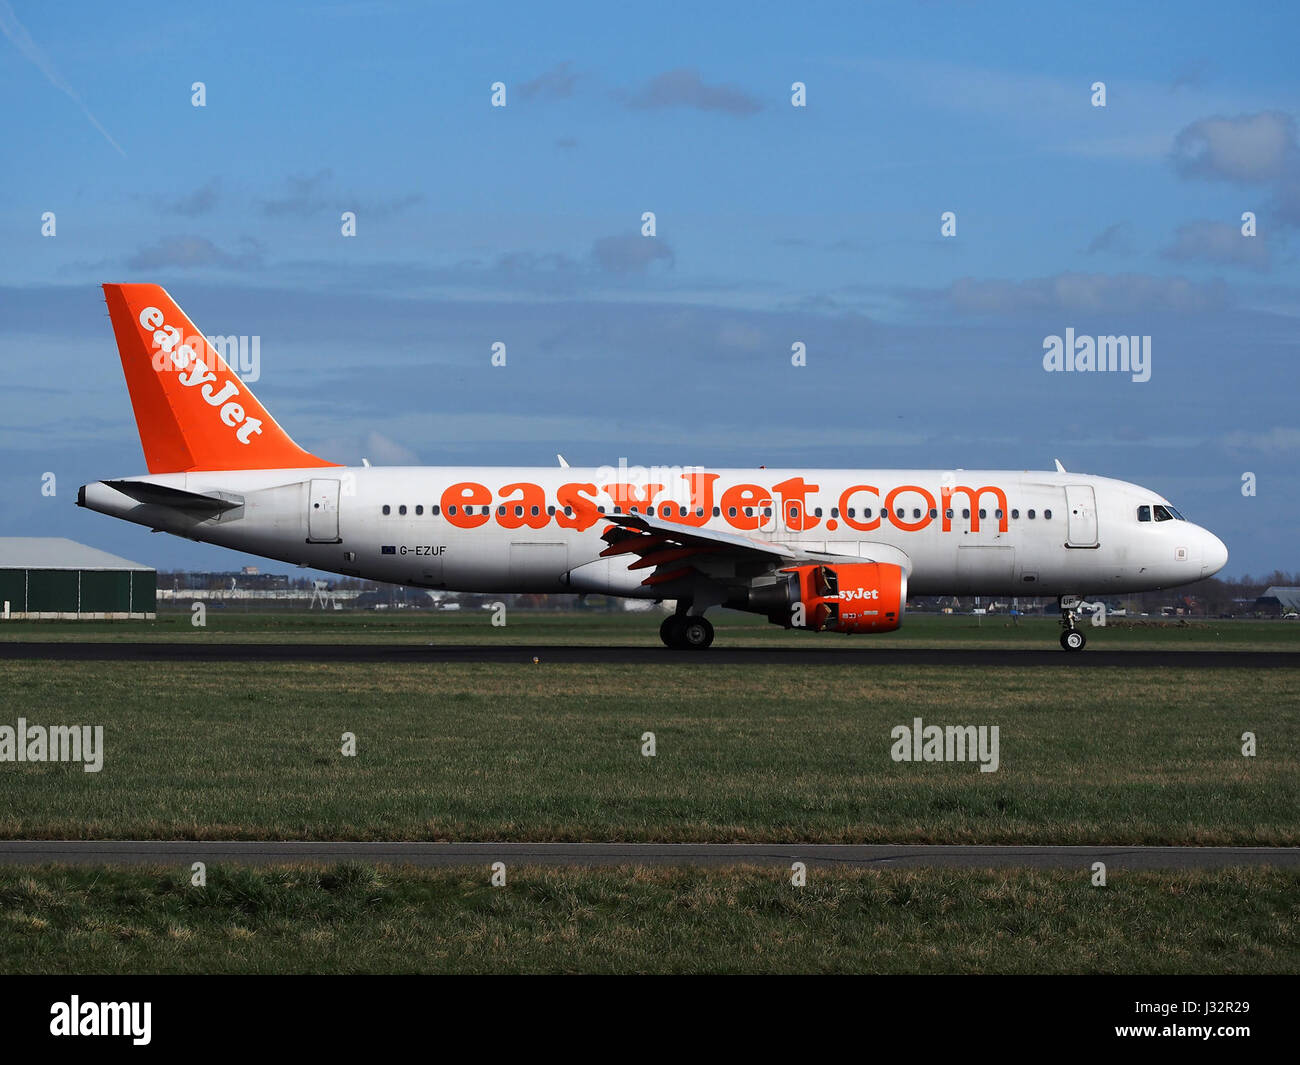 G-EZUF easyJet Airbus A320-214 cn4676 at Schiphol (AMS - EHAM), The Netherlands pic3 - Stock Image